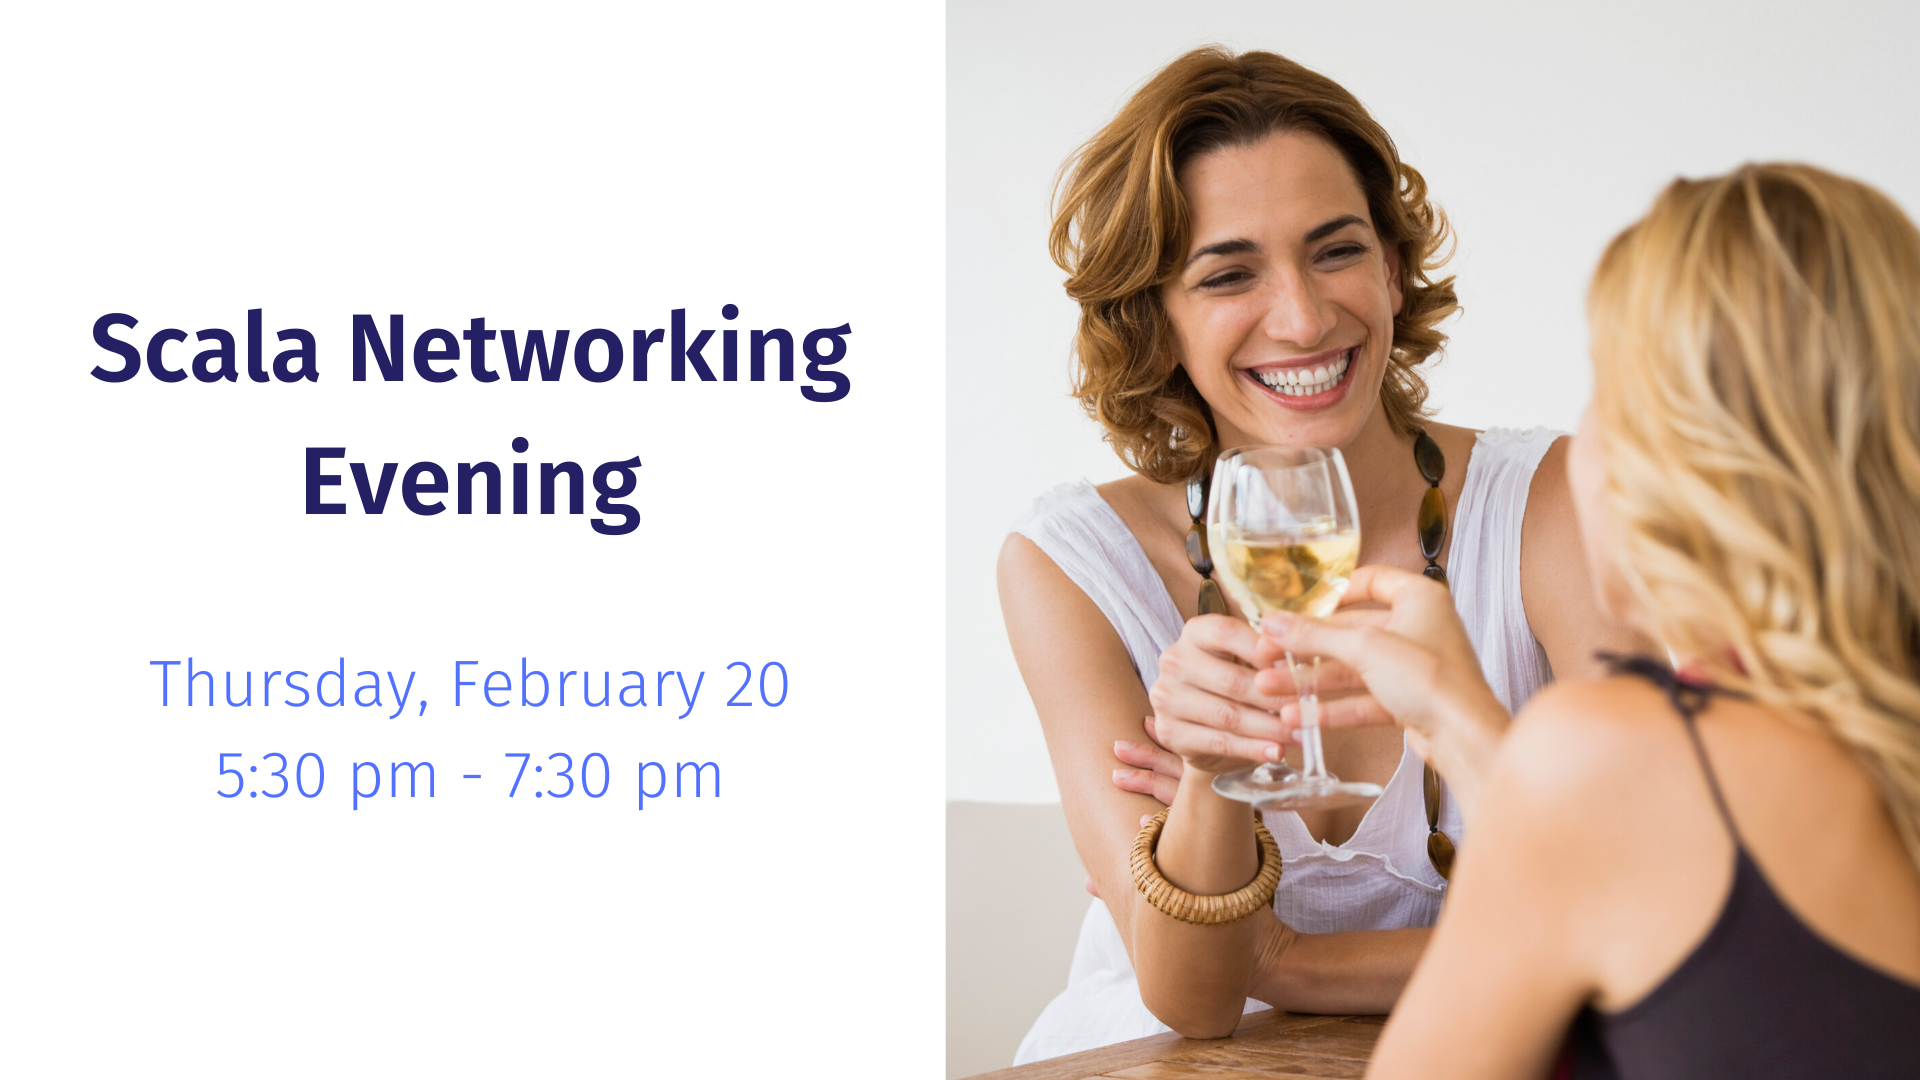 Scala Networking Evening